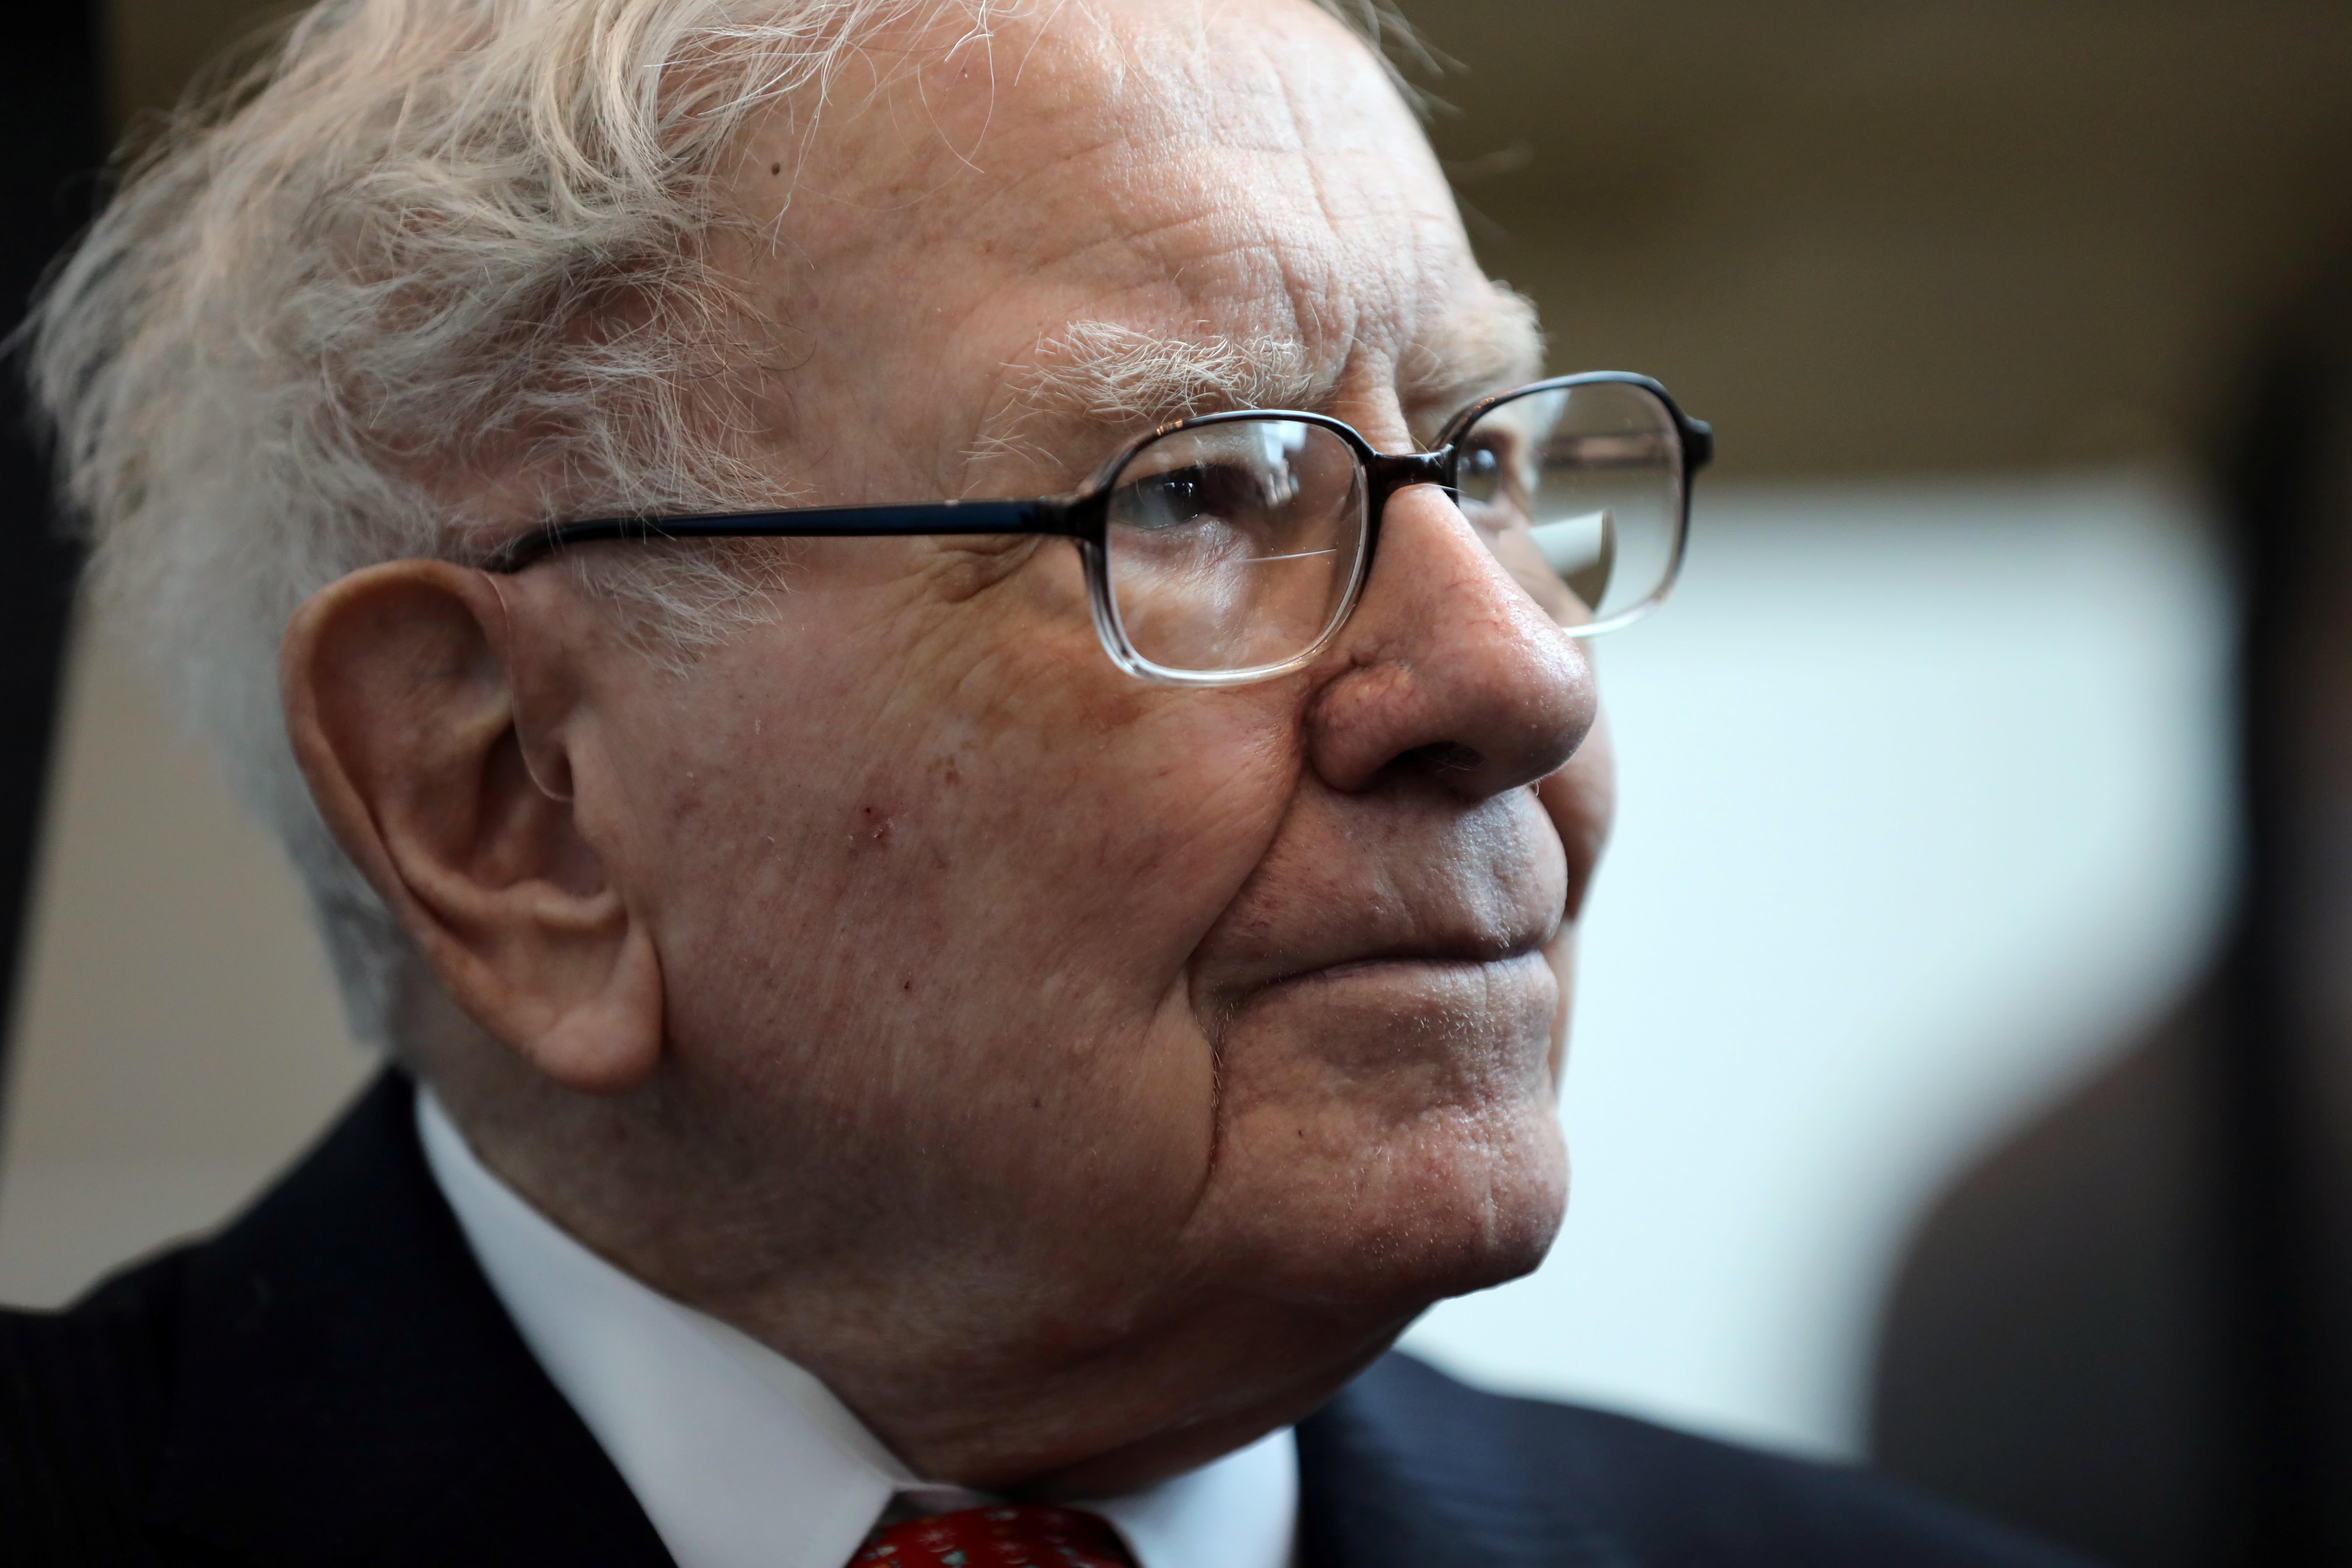 Buffett hints at possible successors, but 88-year-old CEO largely avoids the issue again